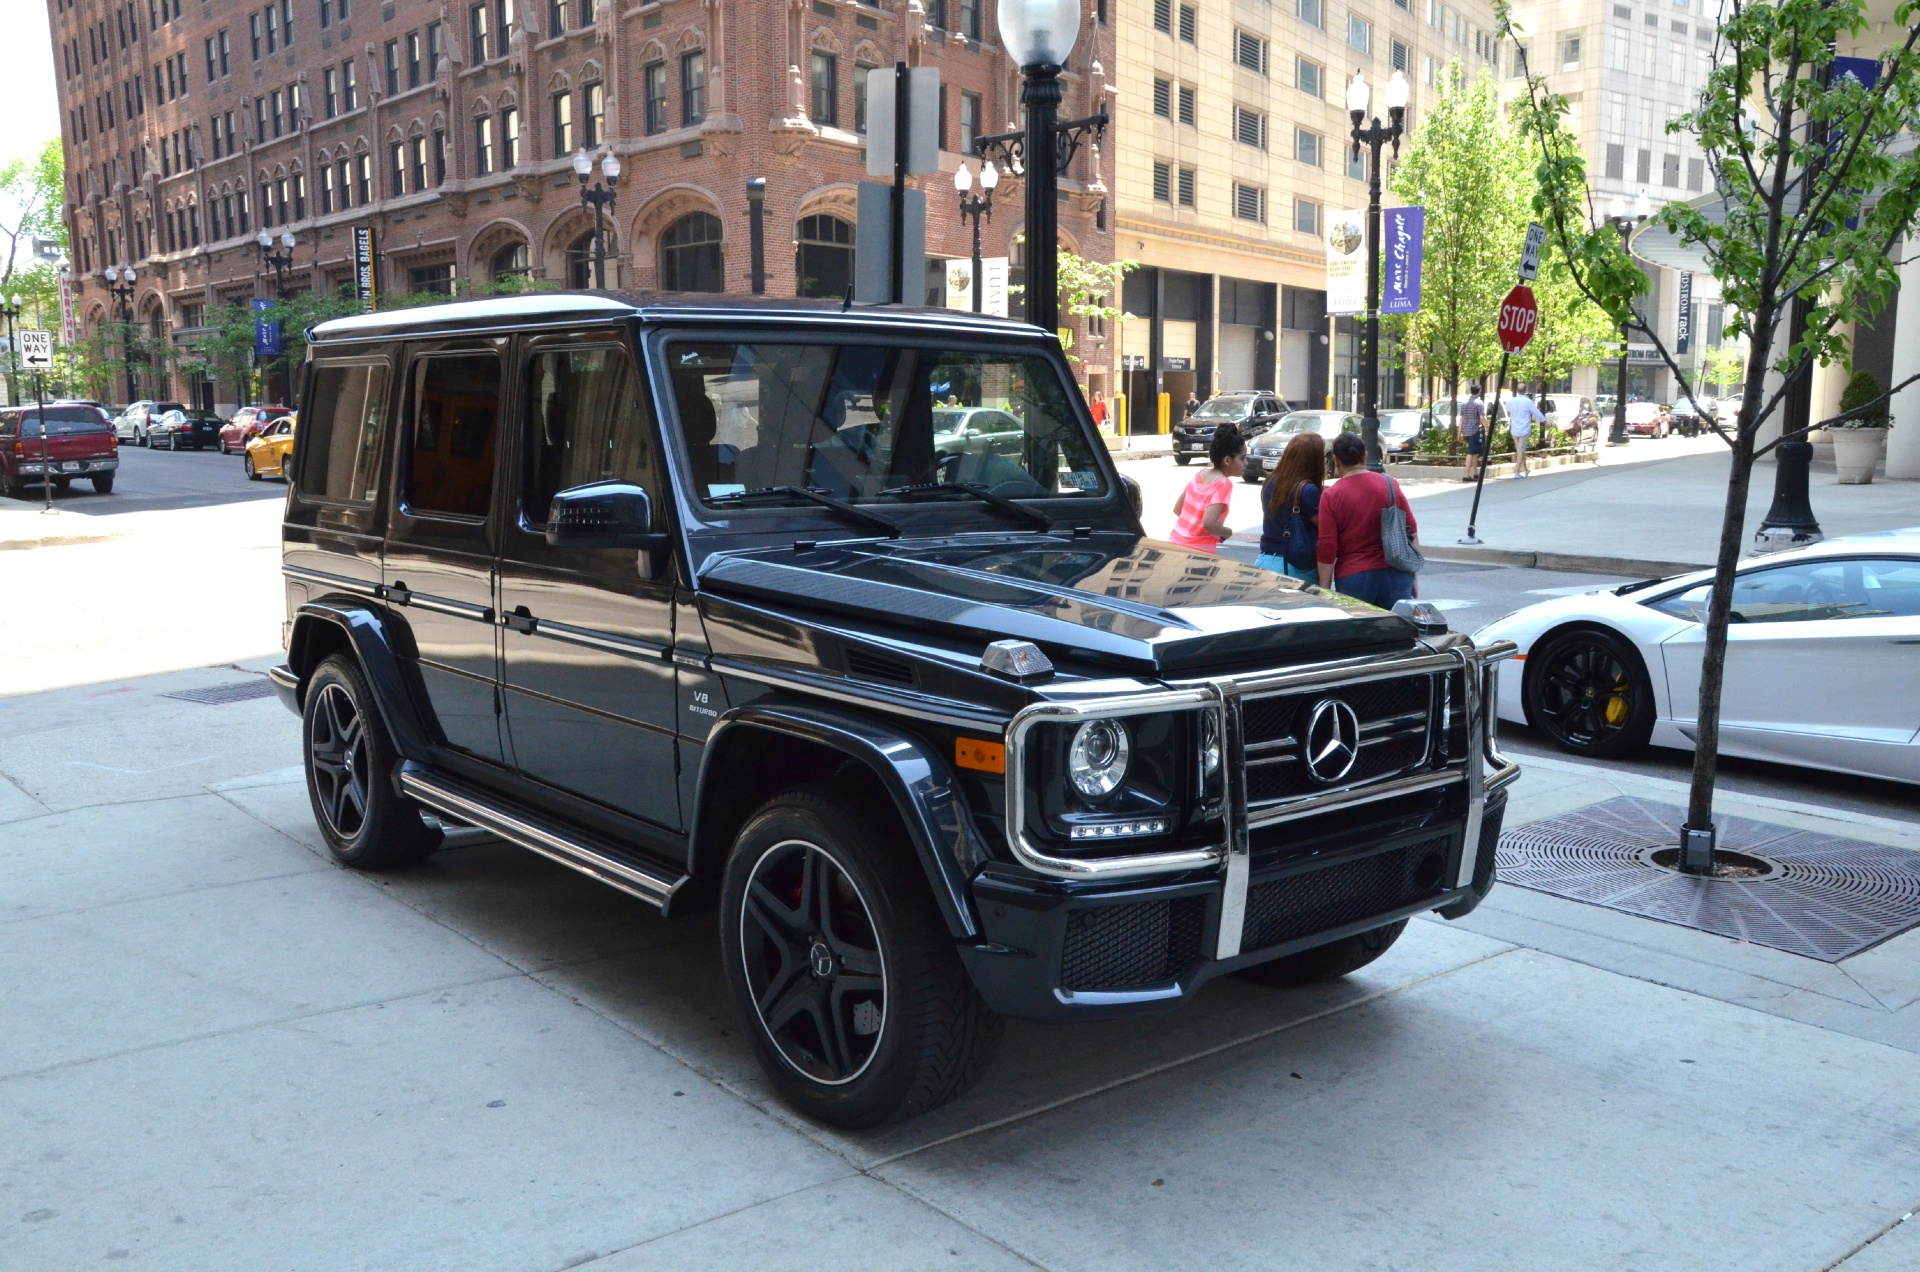 2013 mercedes benz g class g63 amg stock gc1155 for sale for Mercedes benz g63 amg 2013 price